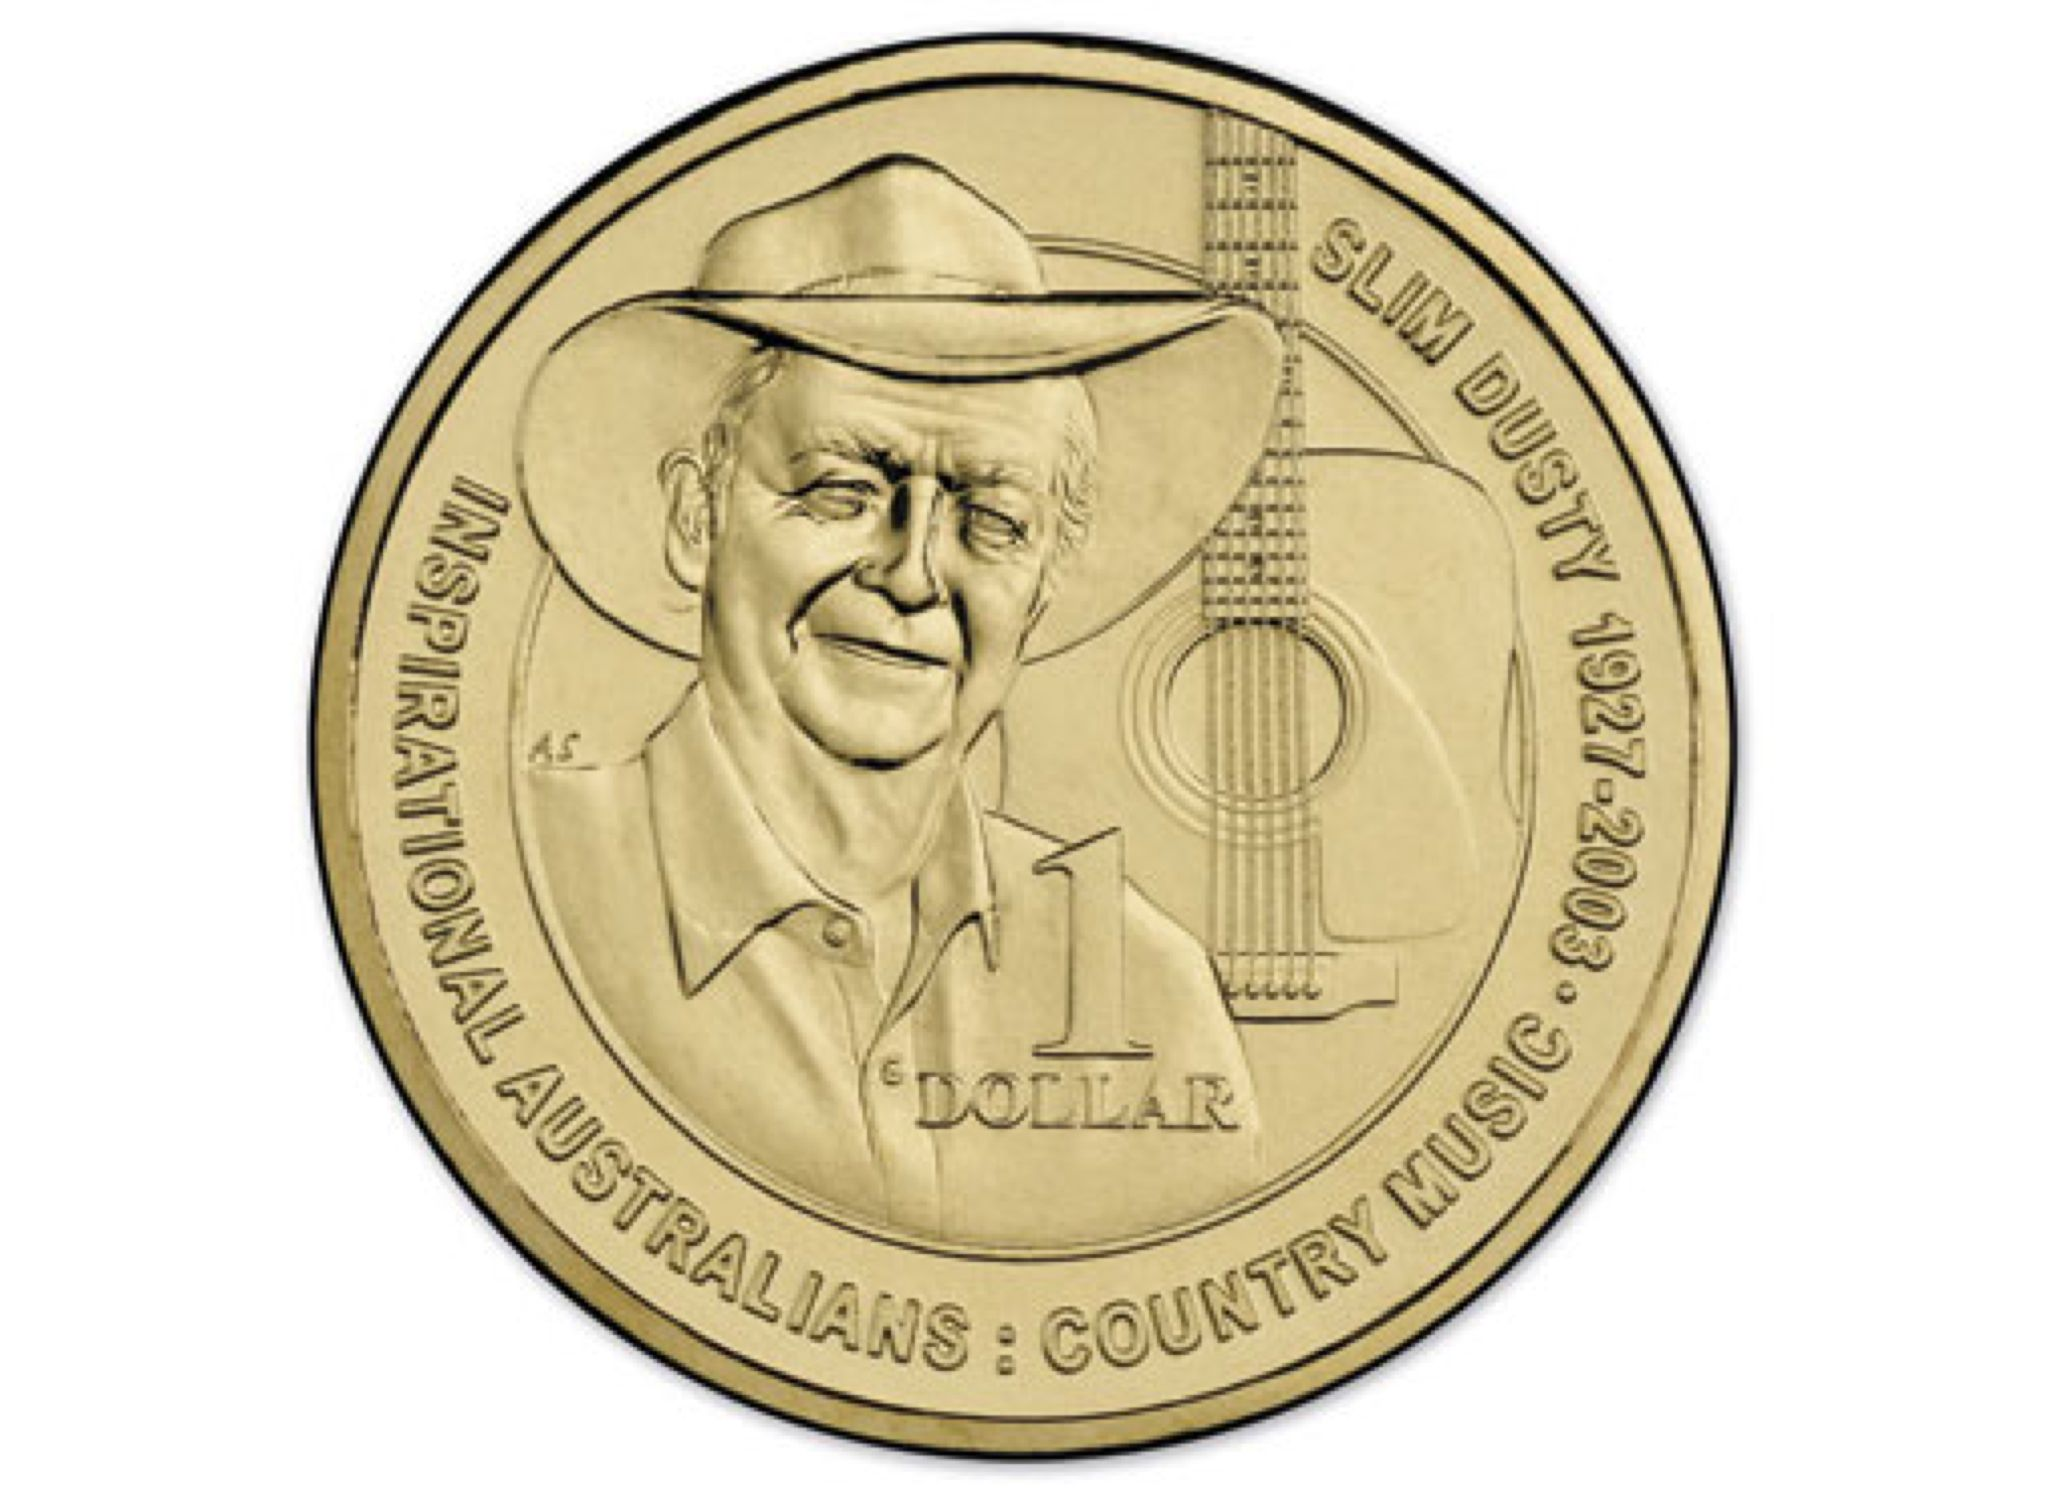 2013 $1 Uncirculated Coin Inspirational Australians - Slim Dusty Coin - $1 (2013) back image (back cover, second image)